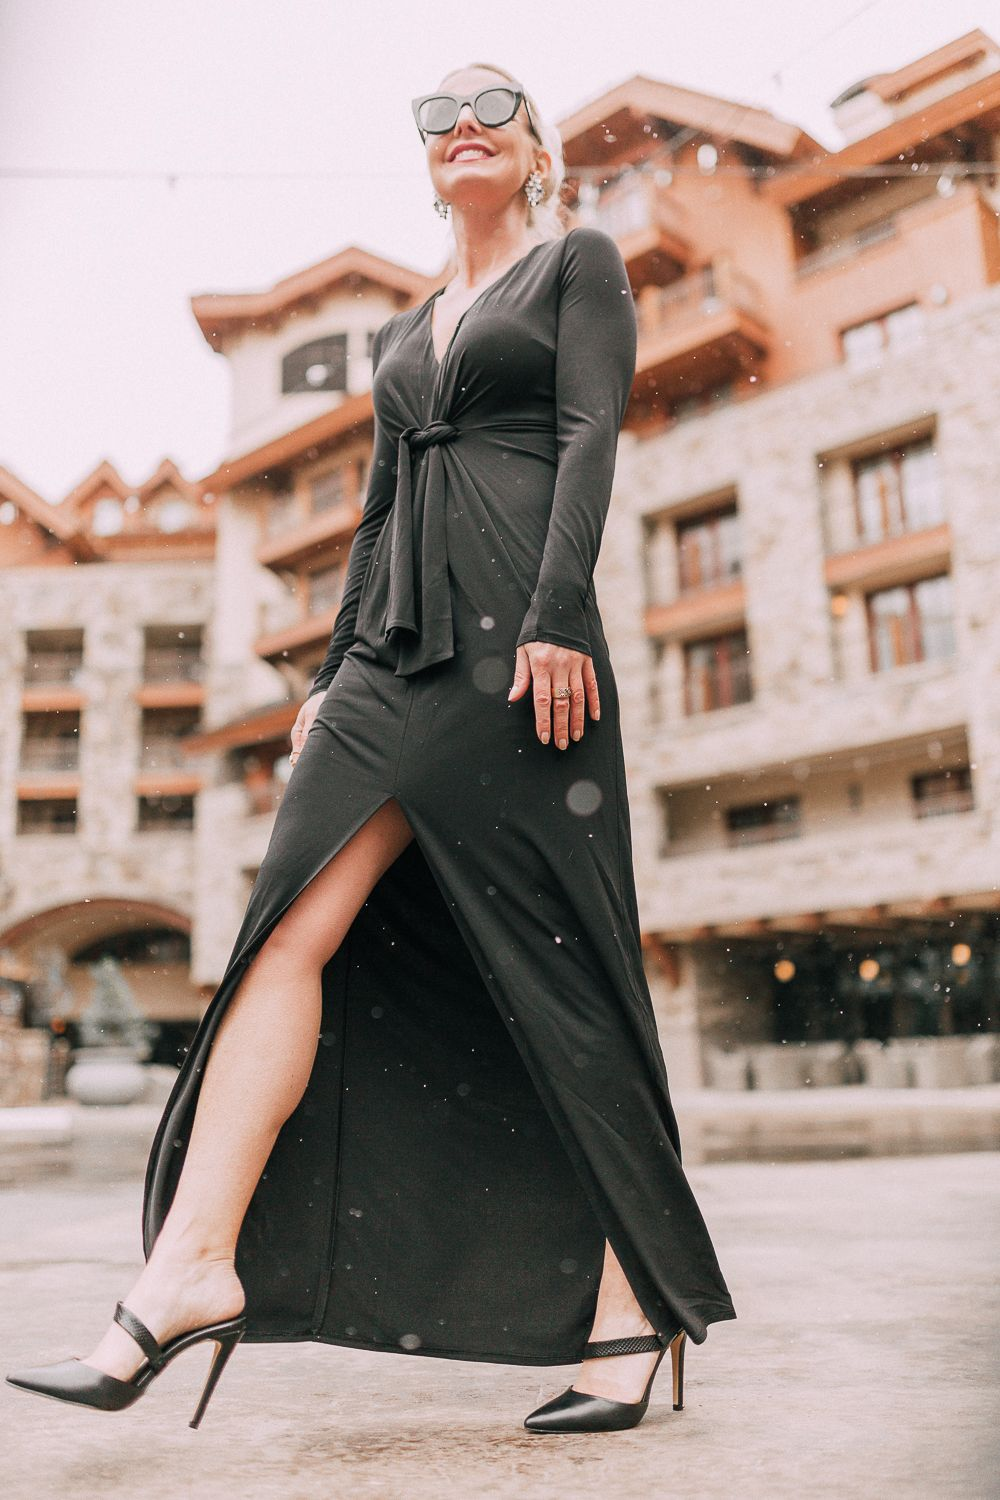 853f1d1d6da Unexpected holiday party outfits featuring a long black maxi dress with high  slit to show off